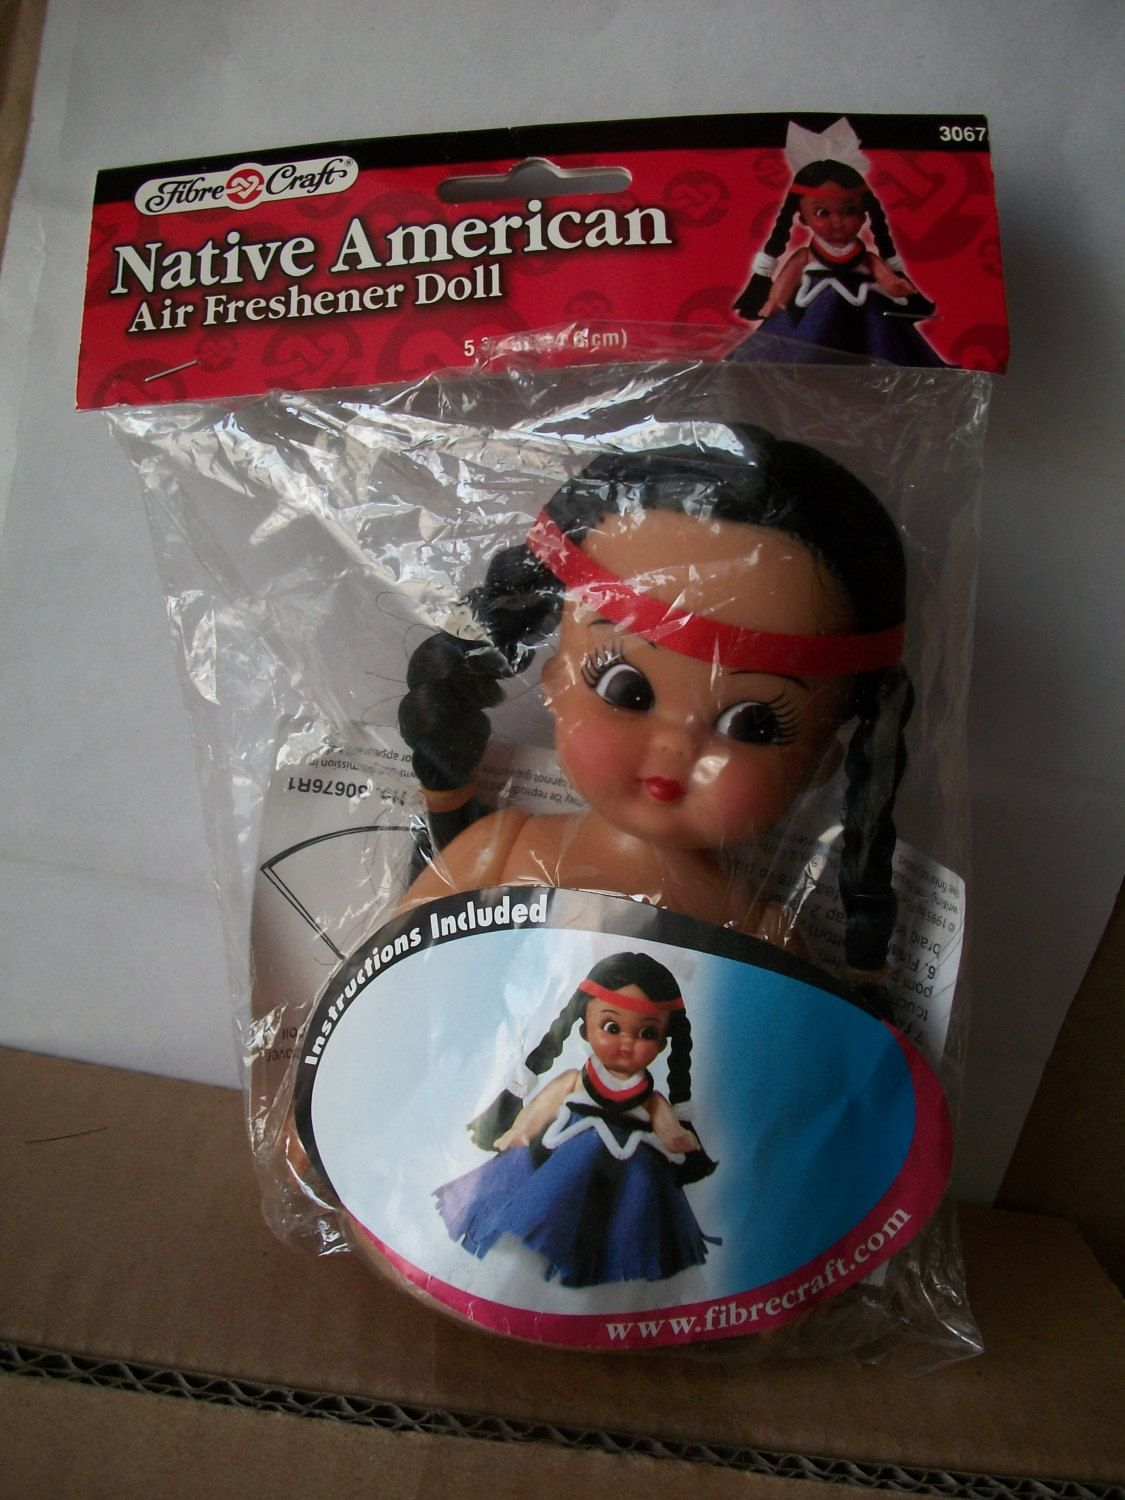 Fibre craft air freshener dolls - Native American Packaged Fibre Craft Air Freshener Doll Kit By Mooglamom On Etsy